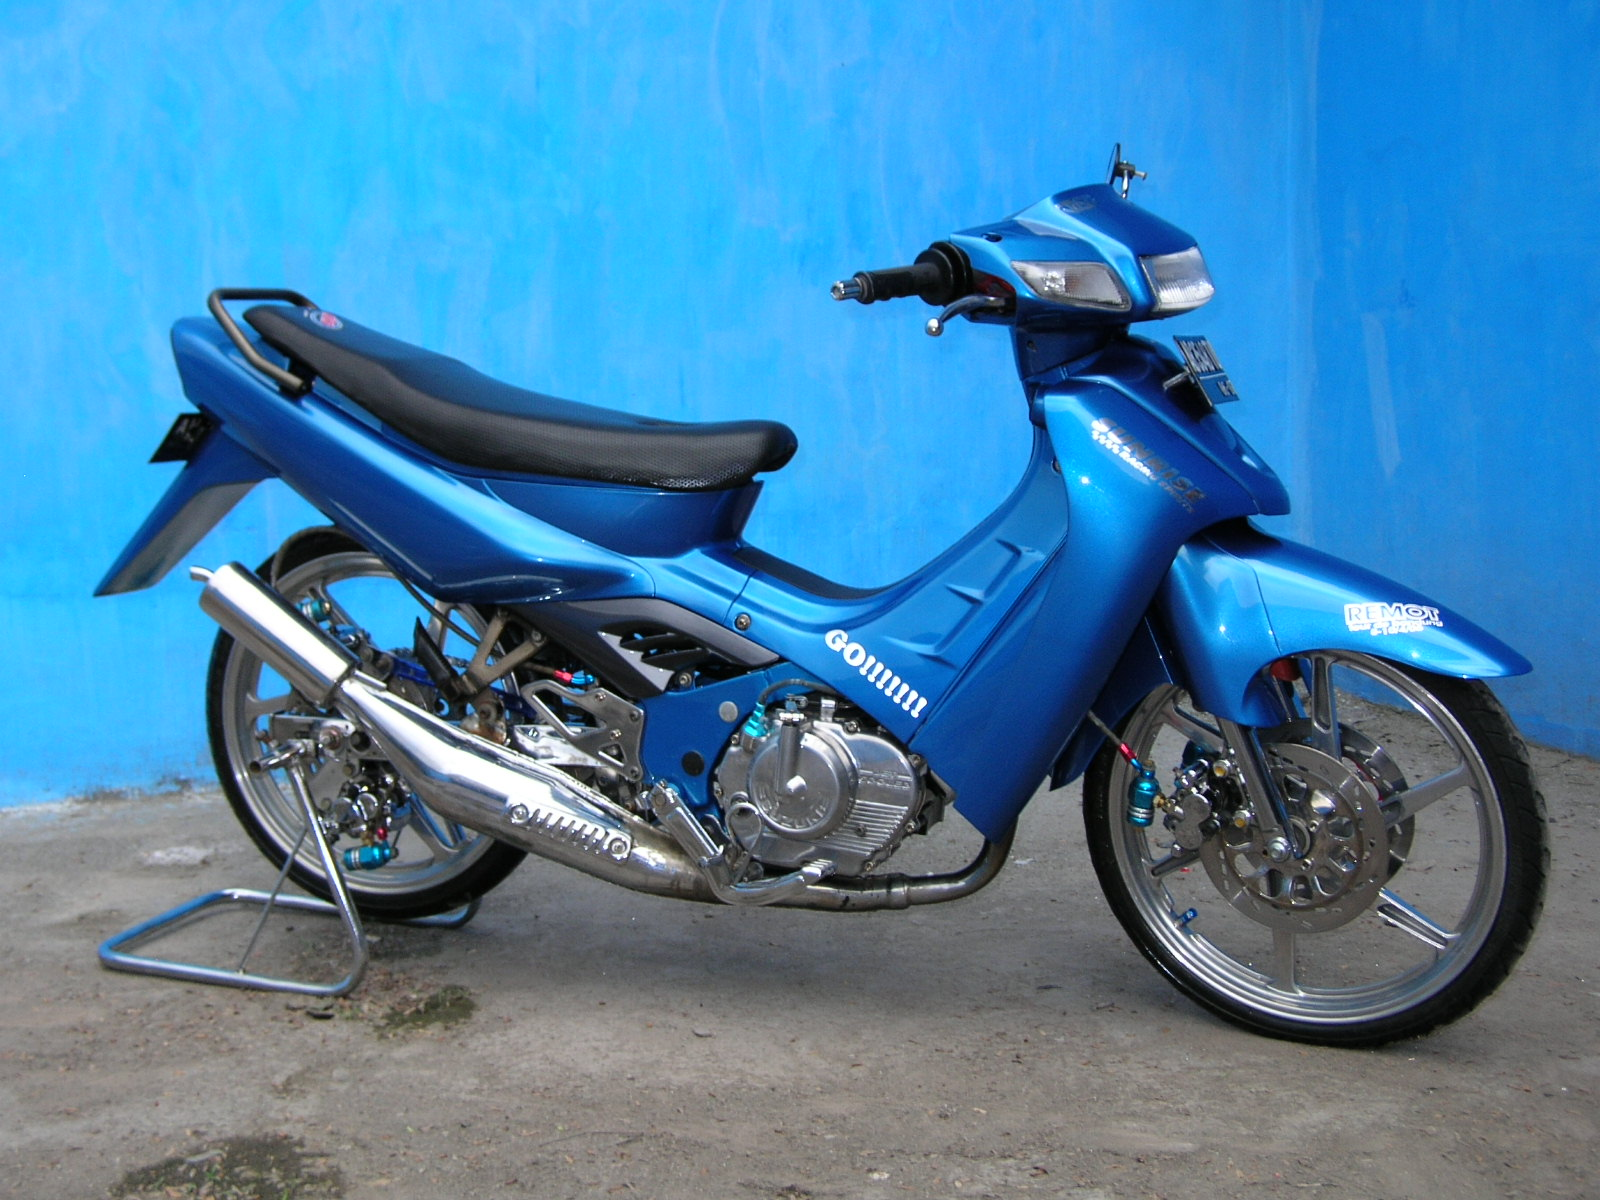 modif suzuki satria blue color airbrush  motor modif contest  trend